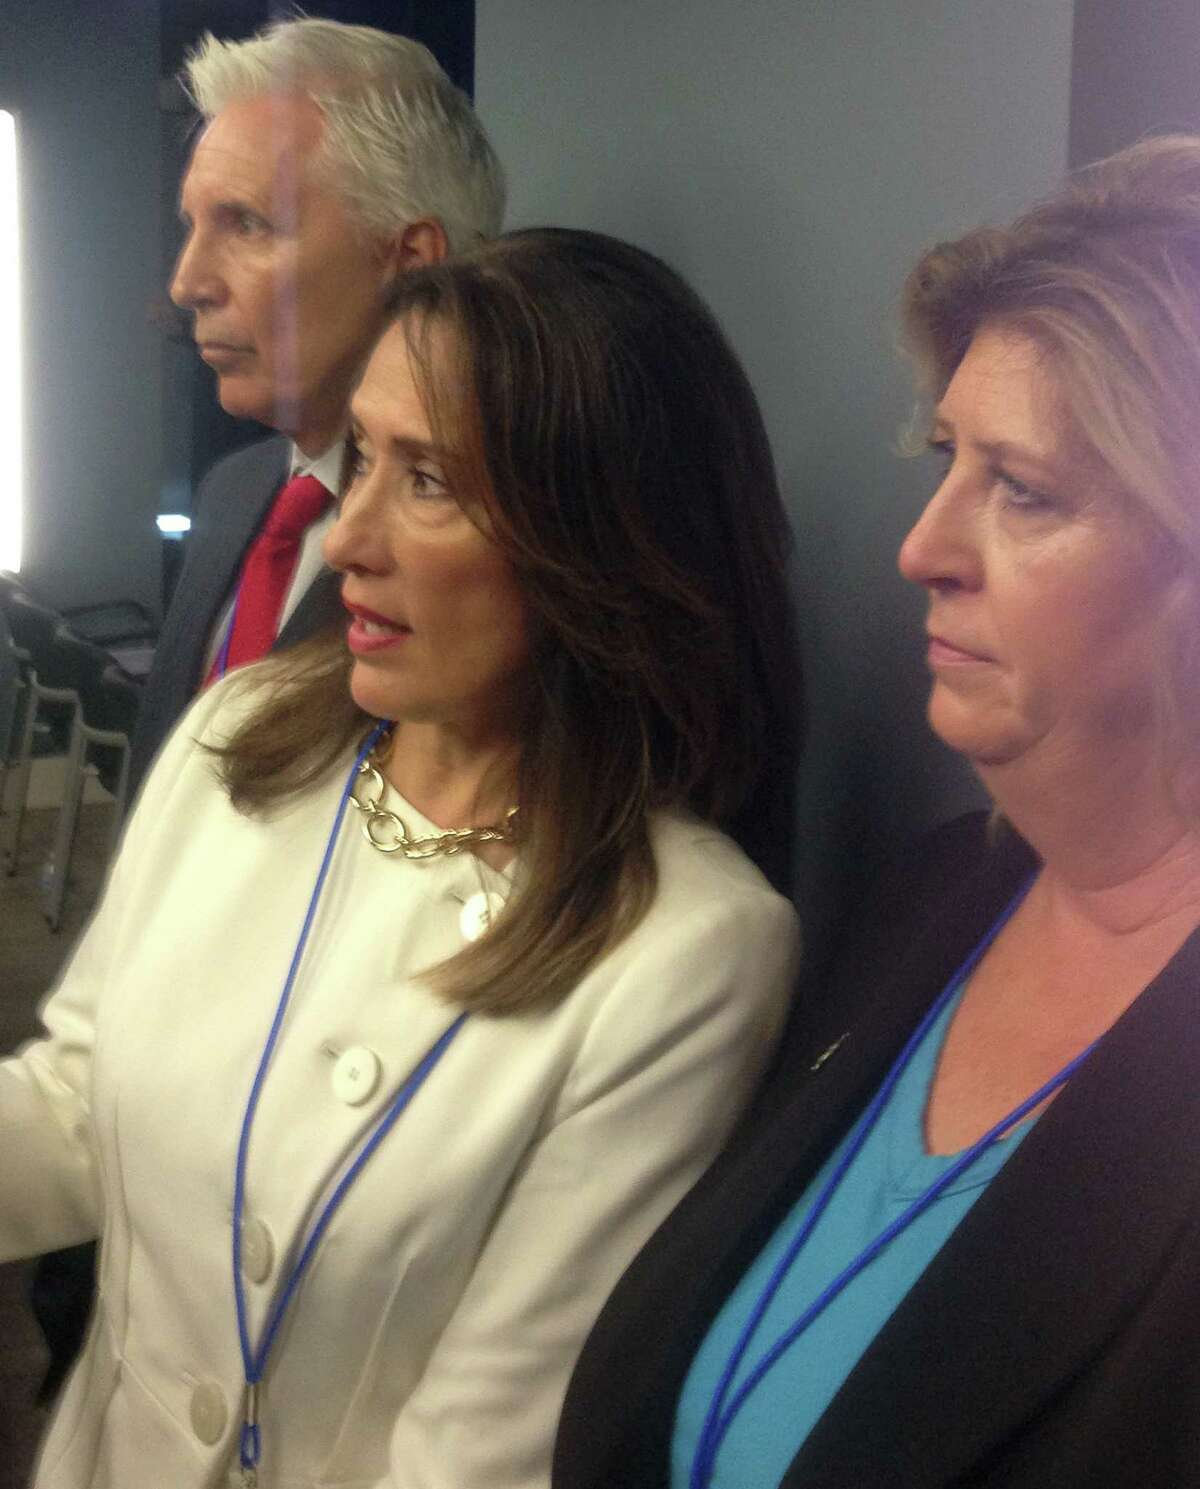 Tim Lyng, Maria Espinoza and Laura Wilkerson were the forces behind the Trump administration's launch of an office to help victims of crimes committed by immigrants living here illegally.